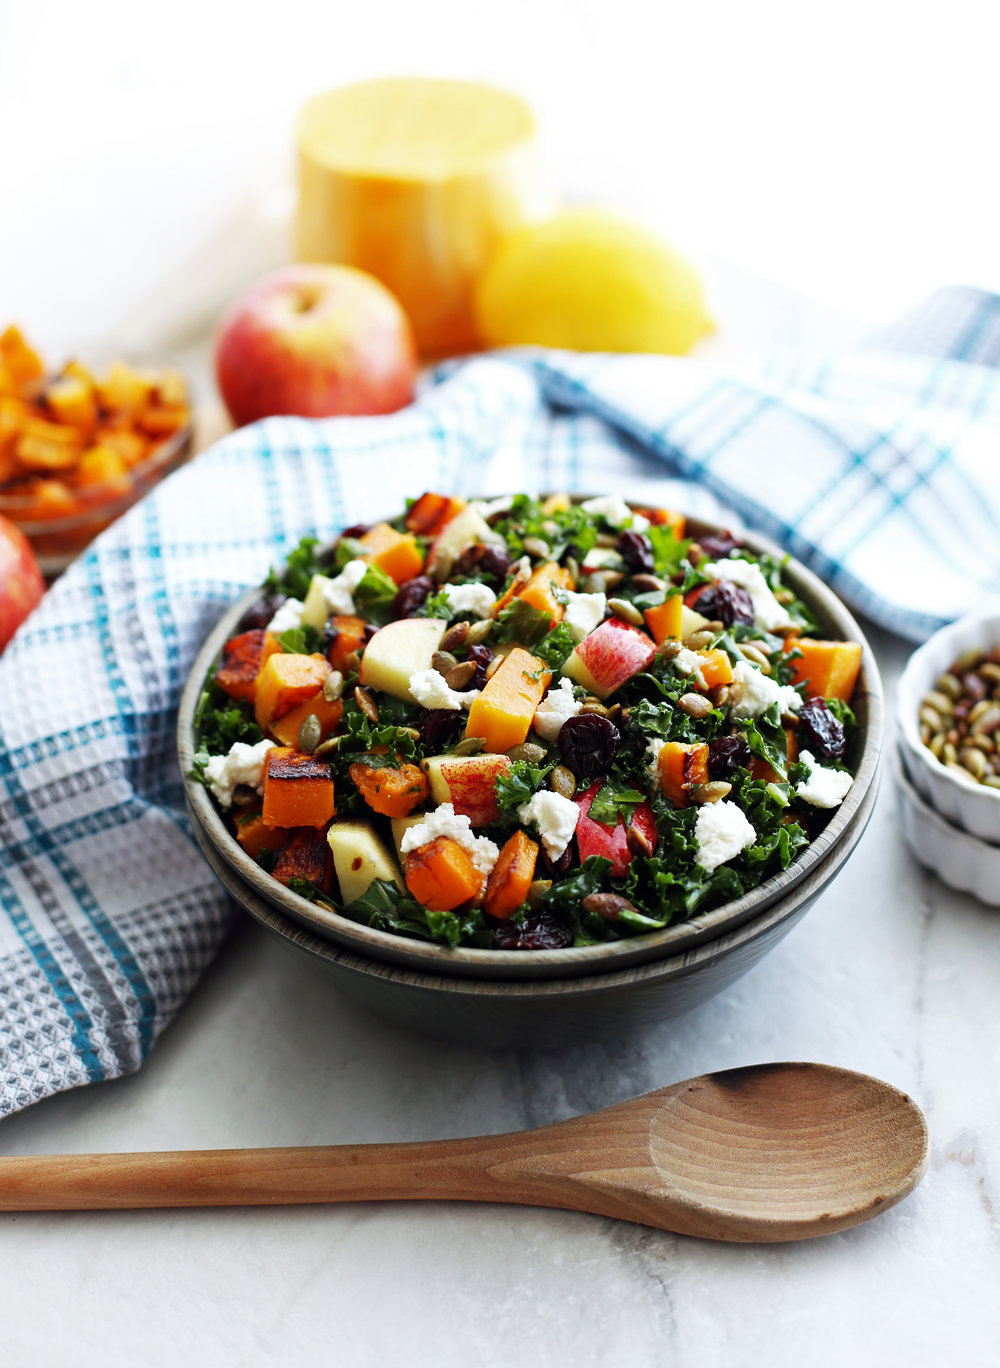 Kale salad with roasted butternut squash, apple, goat cheese, pumpkin seeds, and dried cherries.